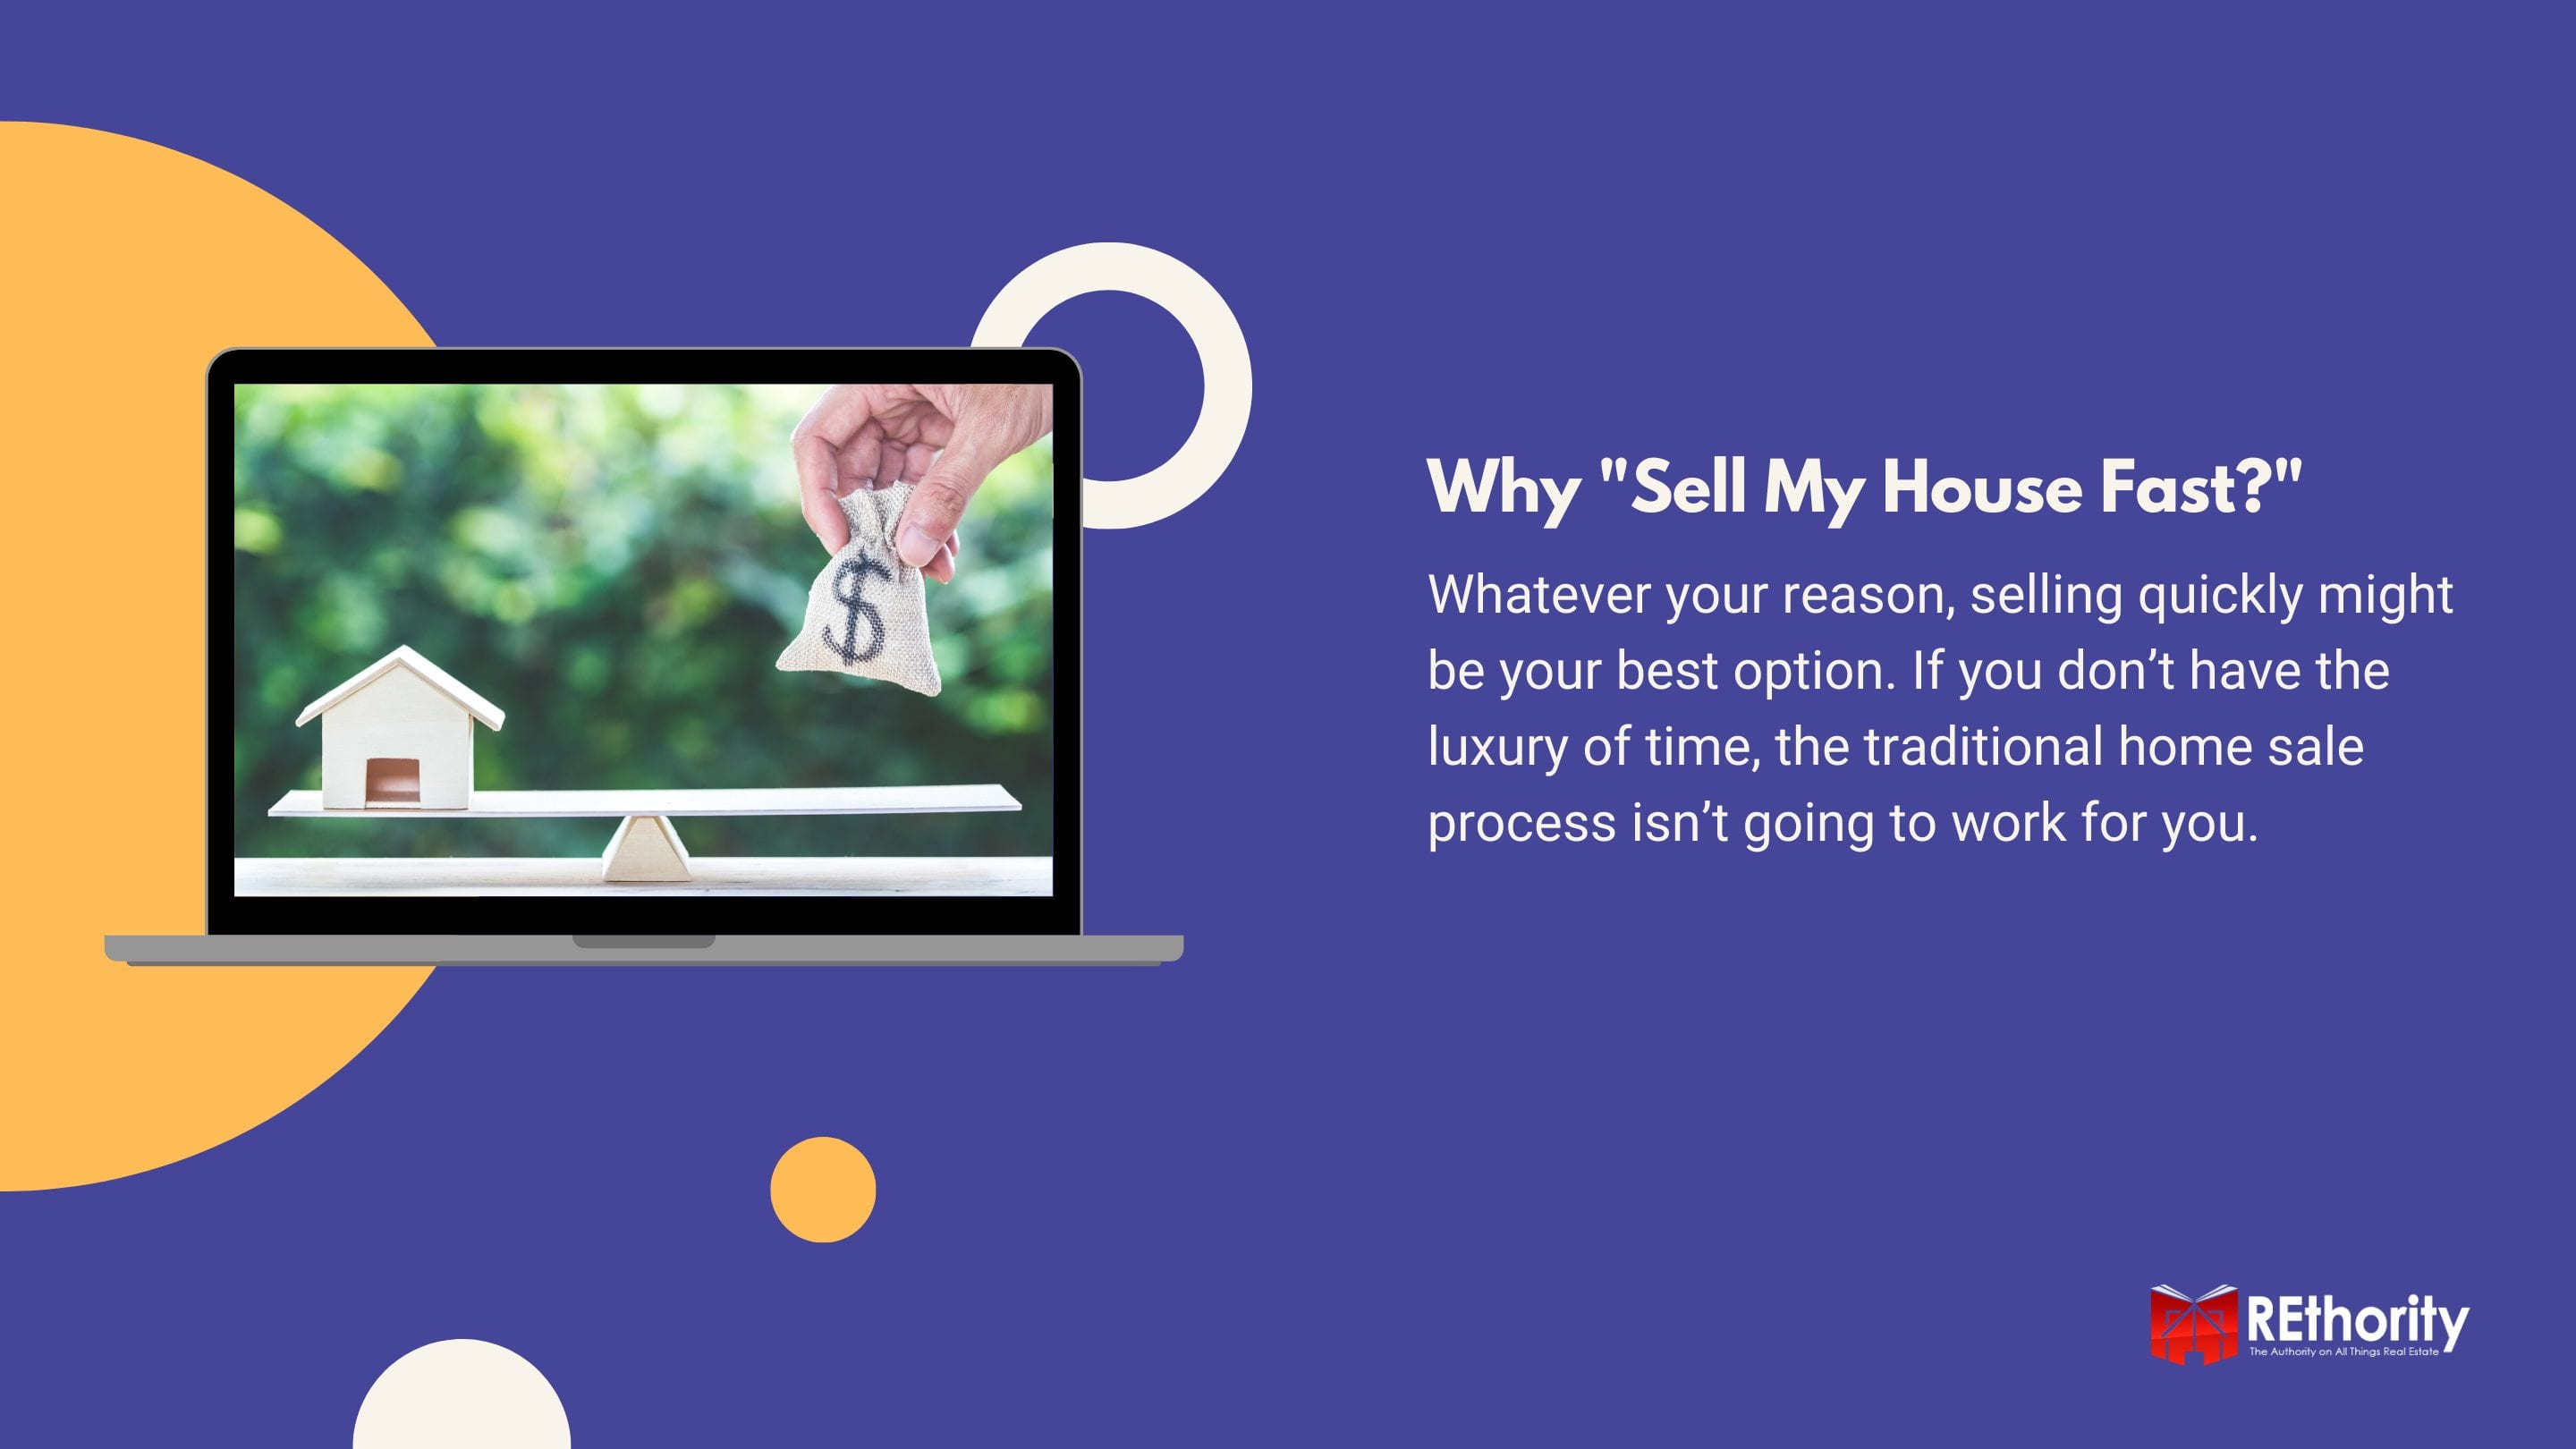 Why _Sell My House Fast__ against blue background with explanation of what the topic is